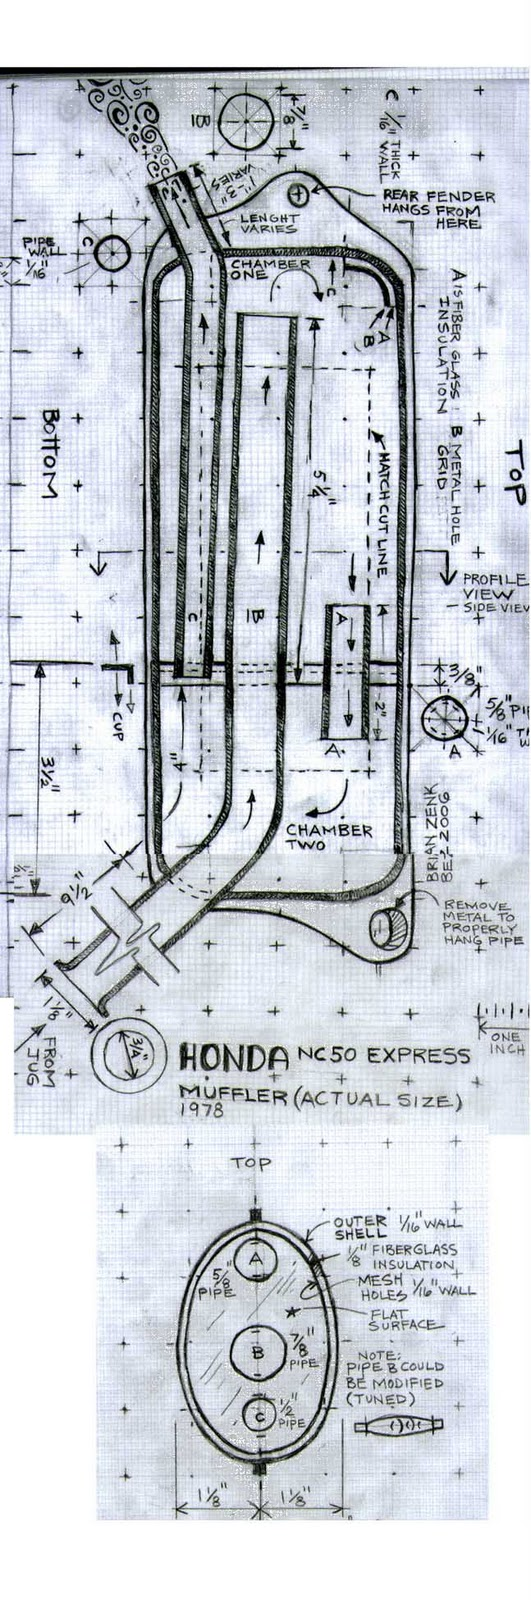 1978 Honda Nc50 Wiring Diagram Trusted Wiring Diagrams Honda Nx125 Wiring  Diagram 1978 Honda Nc50 Wiring Diagram